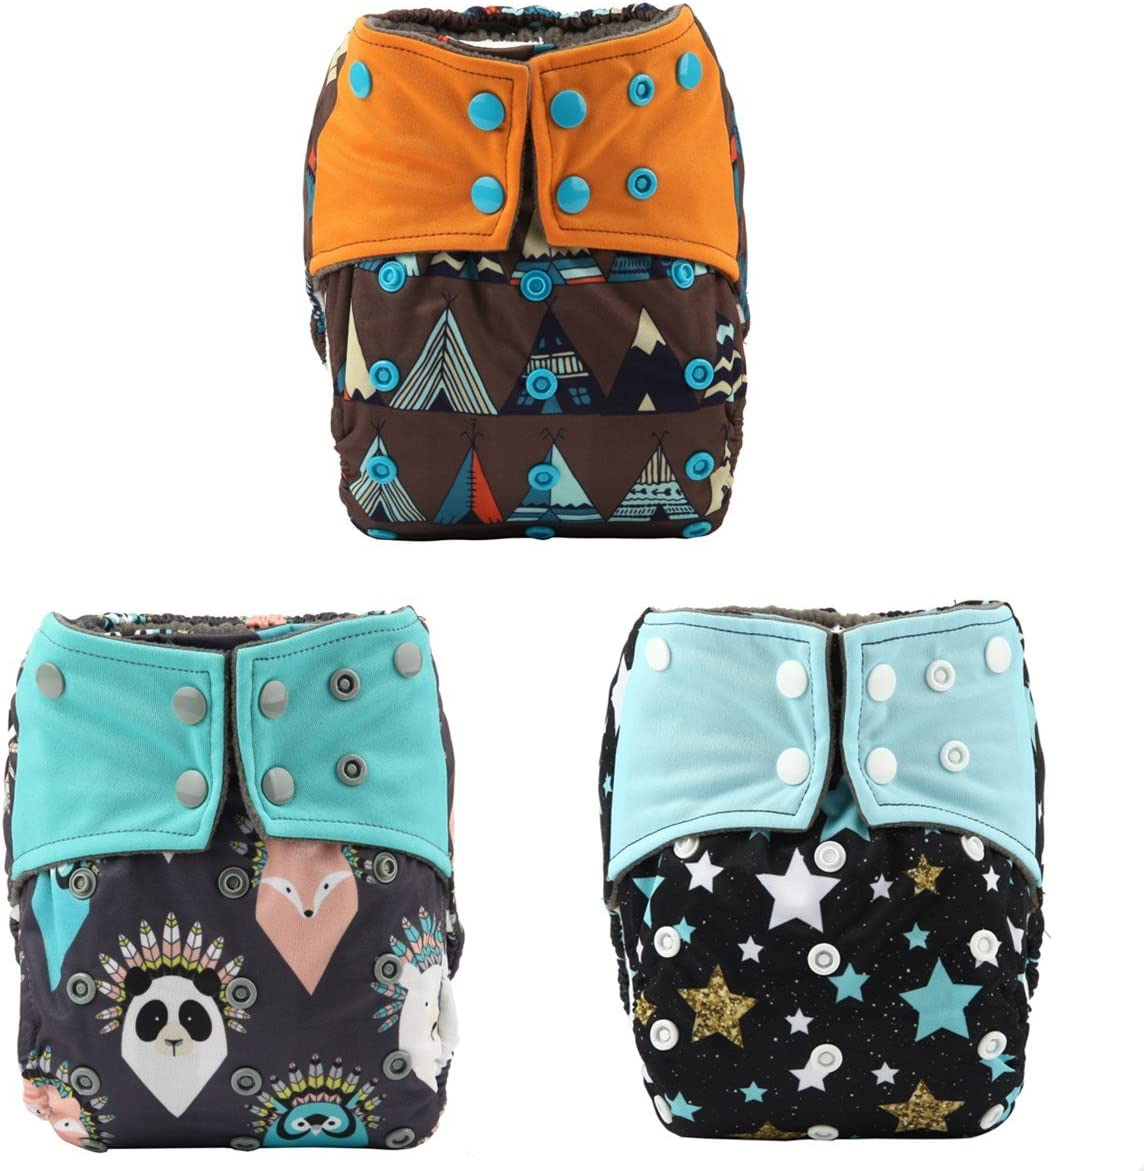 Sigzagor 3 AIll in One Night AIO Cloth Diapers Nappies Built in Charcoal Bamboo Insert Reusable Washable for Boys Teepee Stars